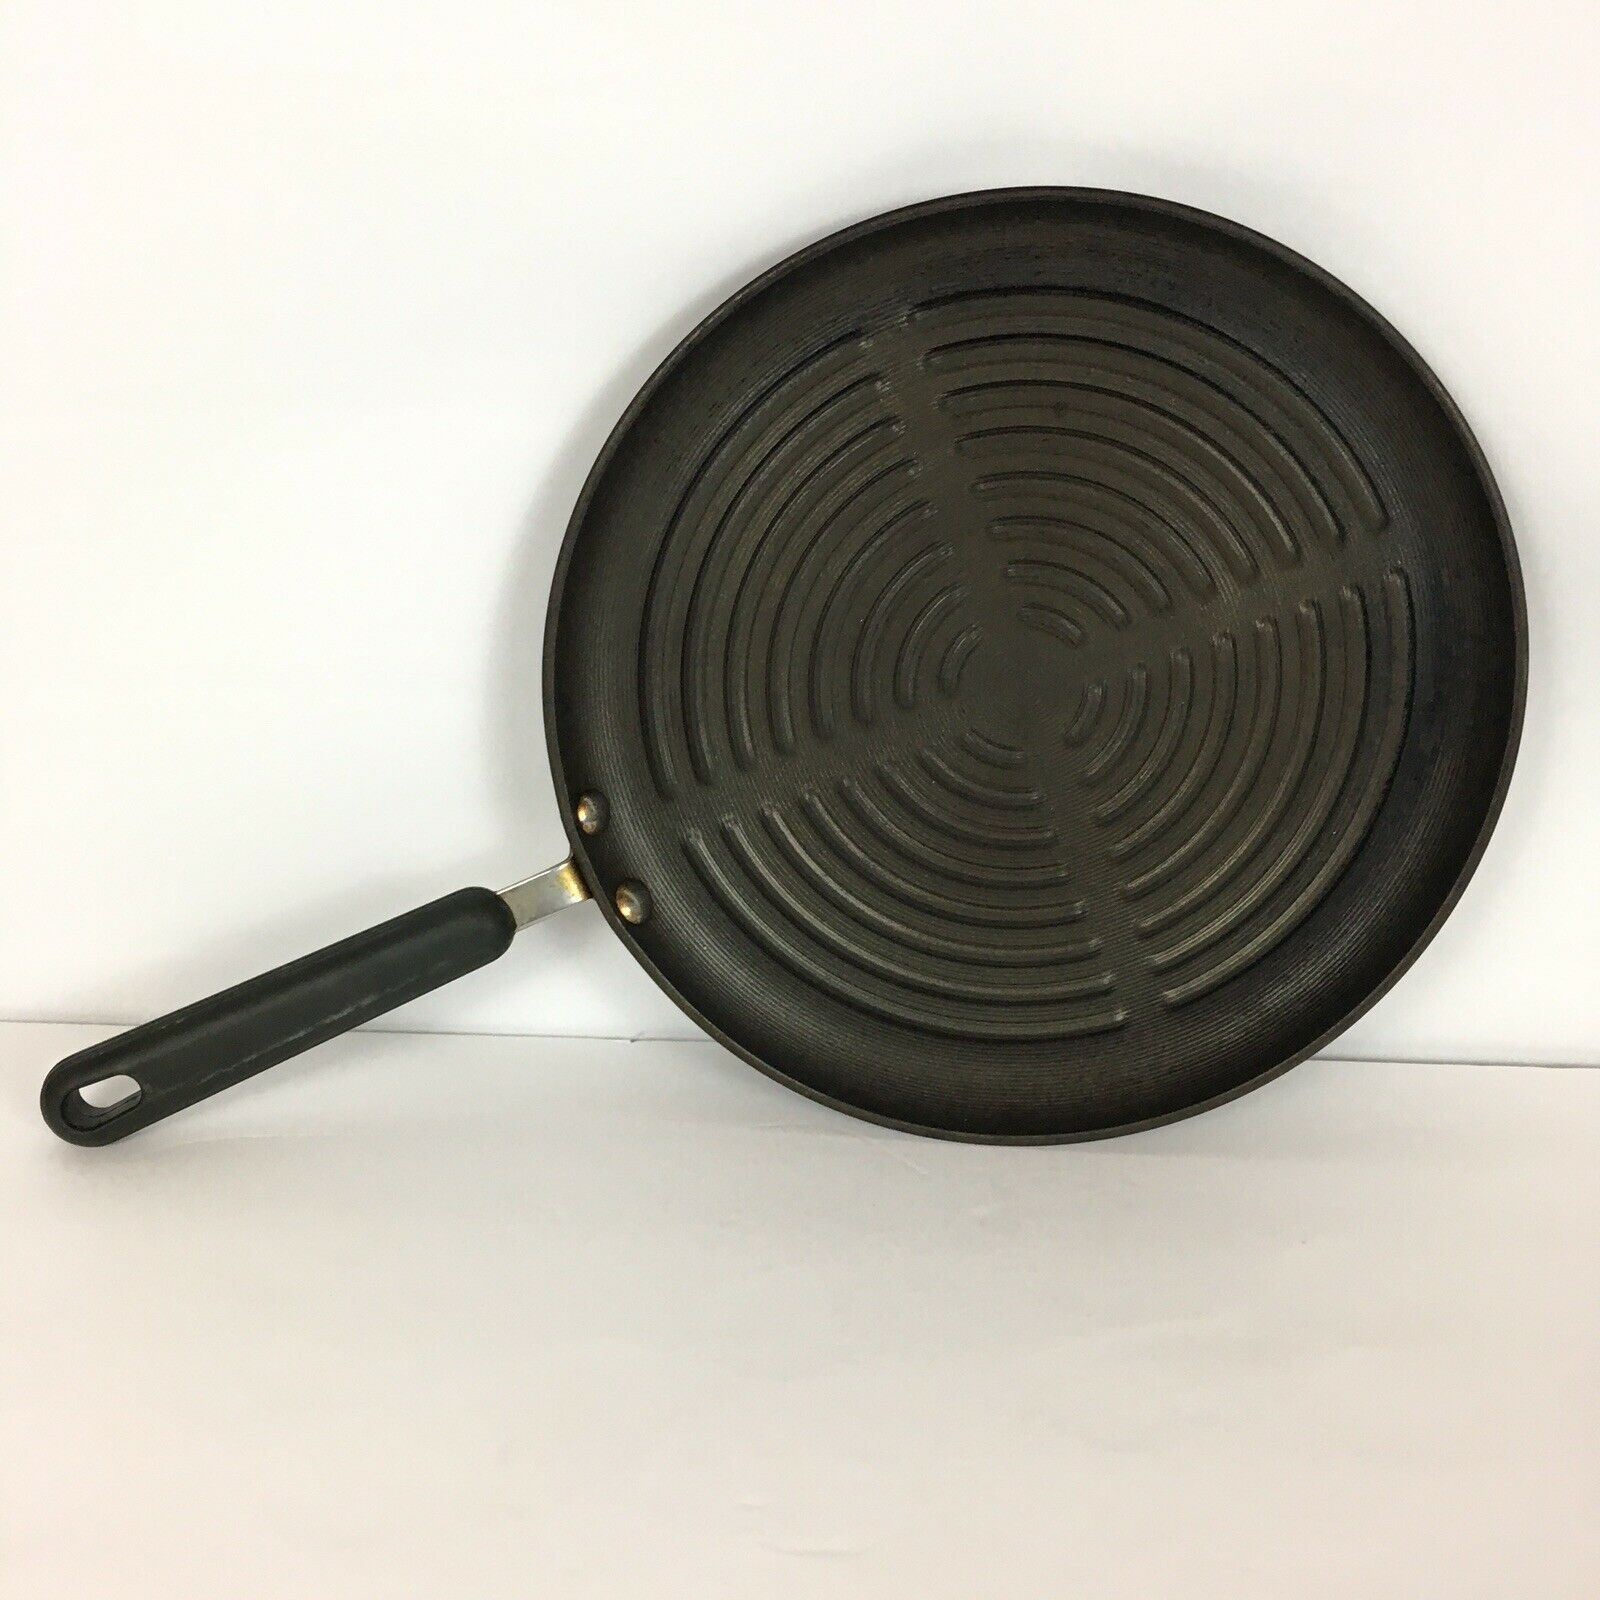 Circulon 12 Inch Shallow Round Nonstick Grill Pan Skillet Heavyweight Vintage Grill Pans Ideas Of Grill Pans Grillpans Grill Pan Grilling Grill Skillet